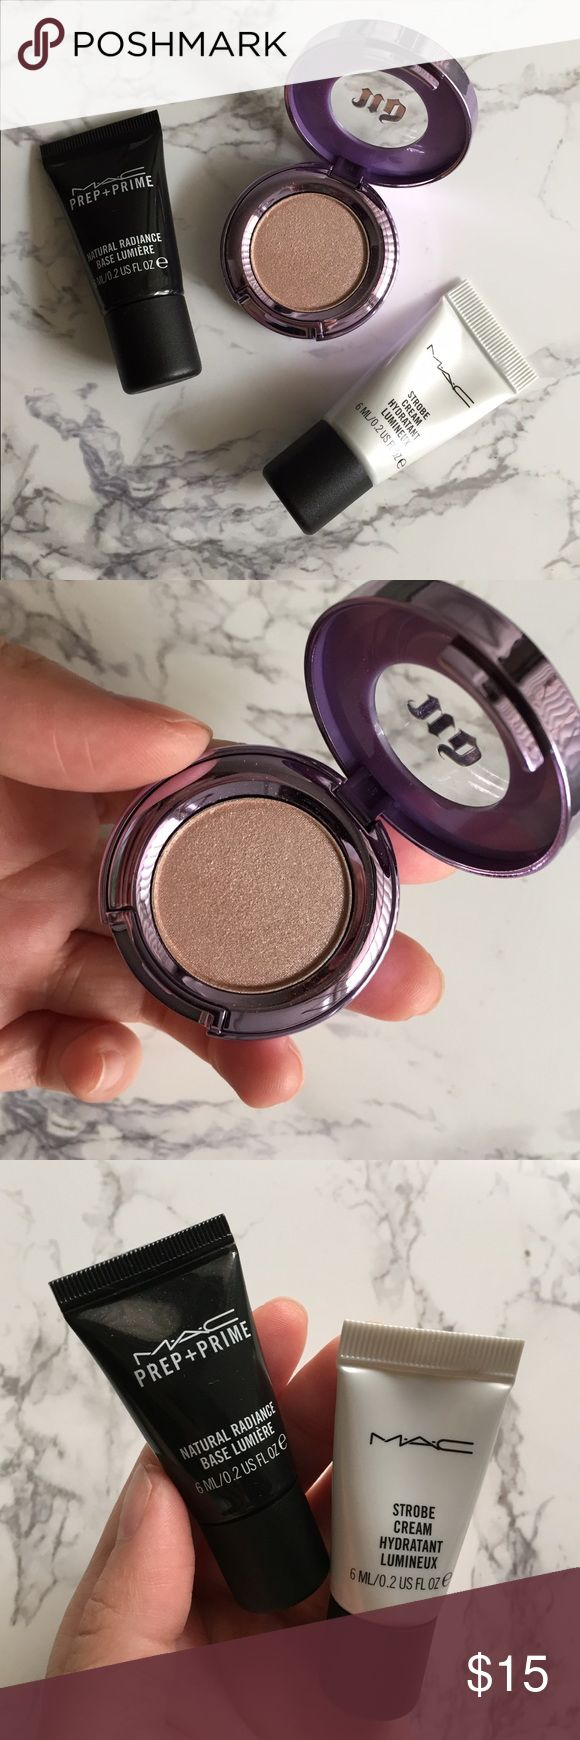 Urban Decay Midnight Cowboy w/ 2 MAC samples Practically new UD Midnight Cowboy eyeshadow (only swatched once). This shadow is described as a pink champagne shimmer with silver glitter. I'm including two MAC samples: natural radiance base and their infamous strobe cream! Urban Decay Makeup Eyeshadow